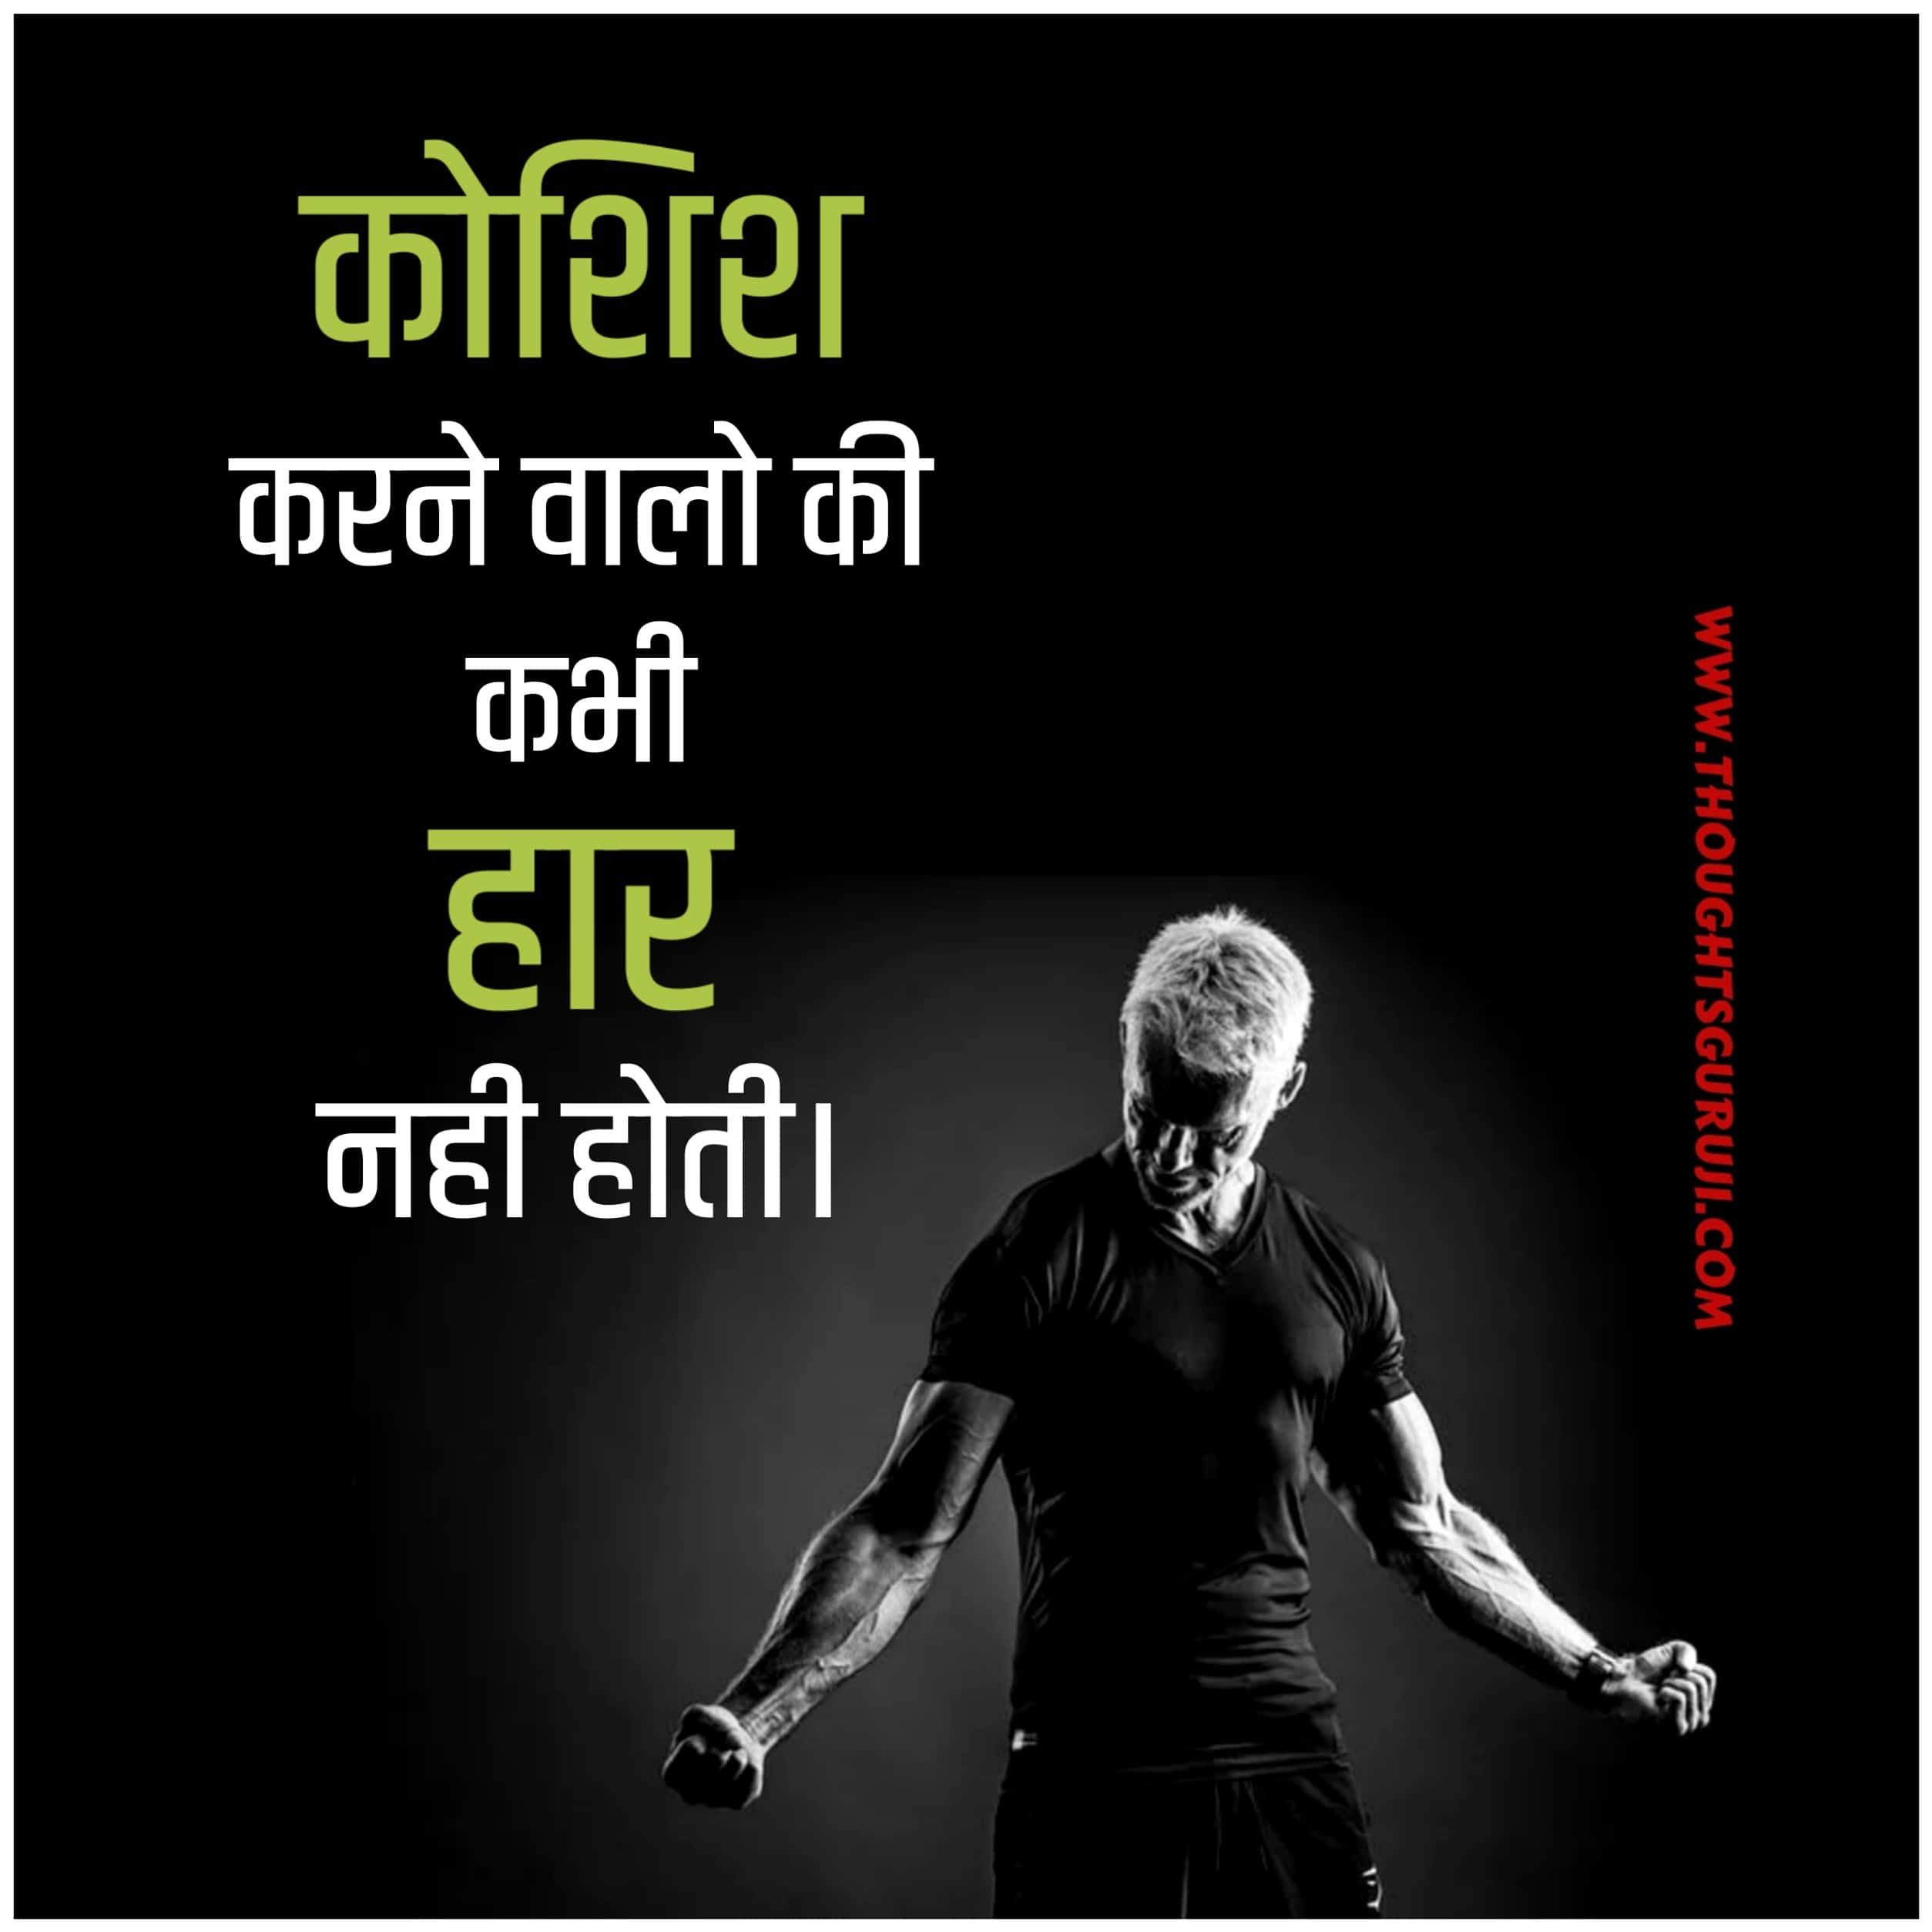 Health And Fitness Quotes In Hindi With Images À¤œ À¤® À¤µà¤° À¤•à¤†à¤‰à¤Ÿ À¤¸ À¤Ÿ À¤Ÿà¤¸ À¤¹ À¤¦ À¤® In 2020 Gym Motivation Quotes Workout Status Gym Workout Quotes